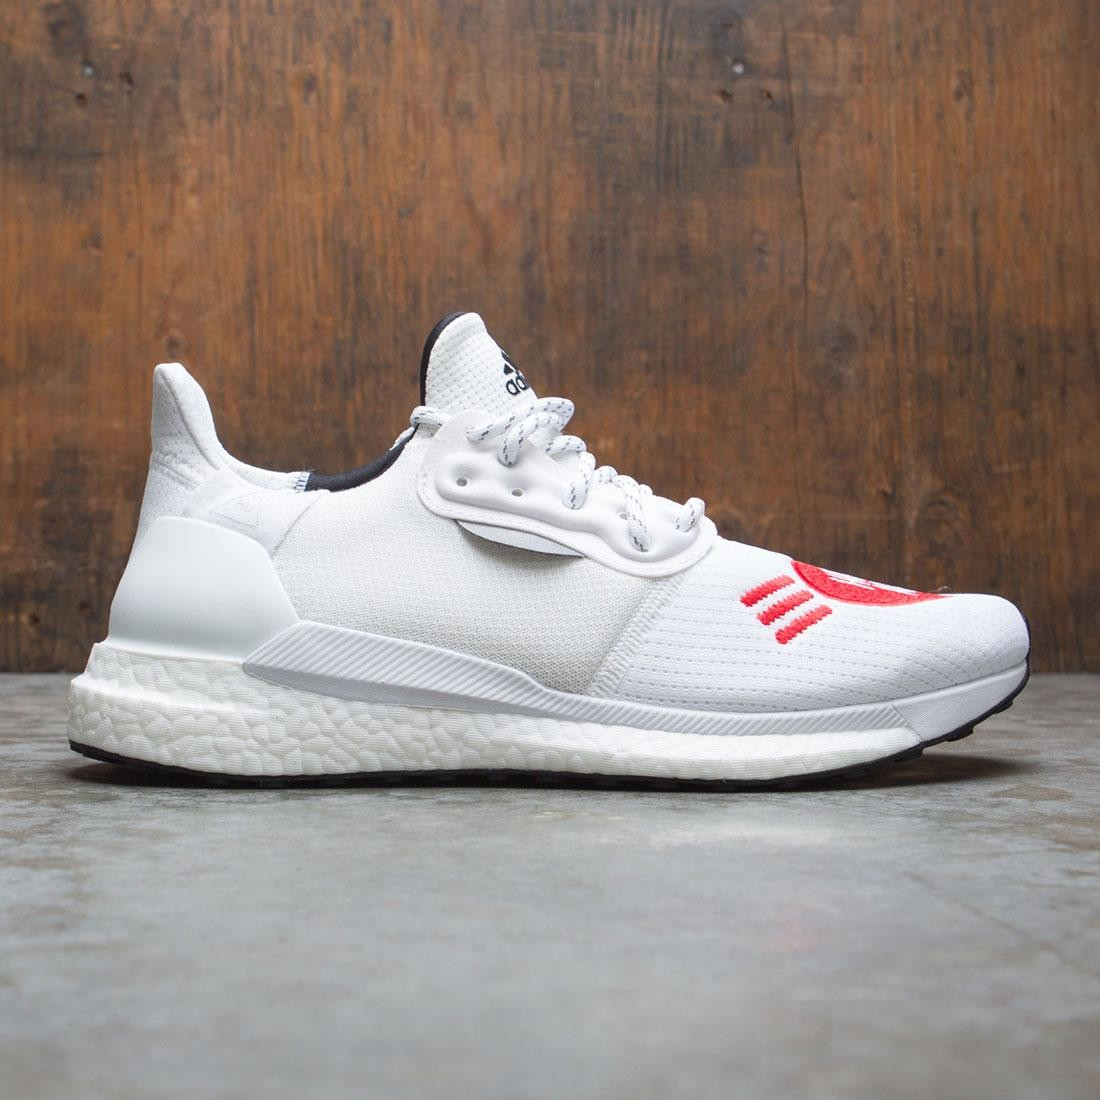 Adidas x Pharrell Williams Men Solar HU Human Made (white / core black / scarlet)